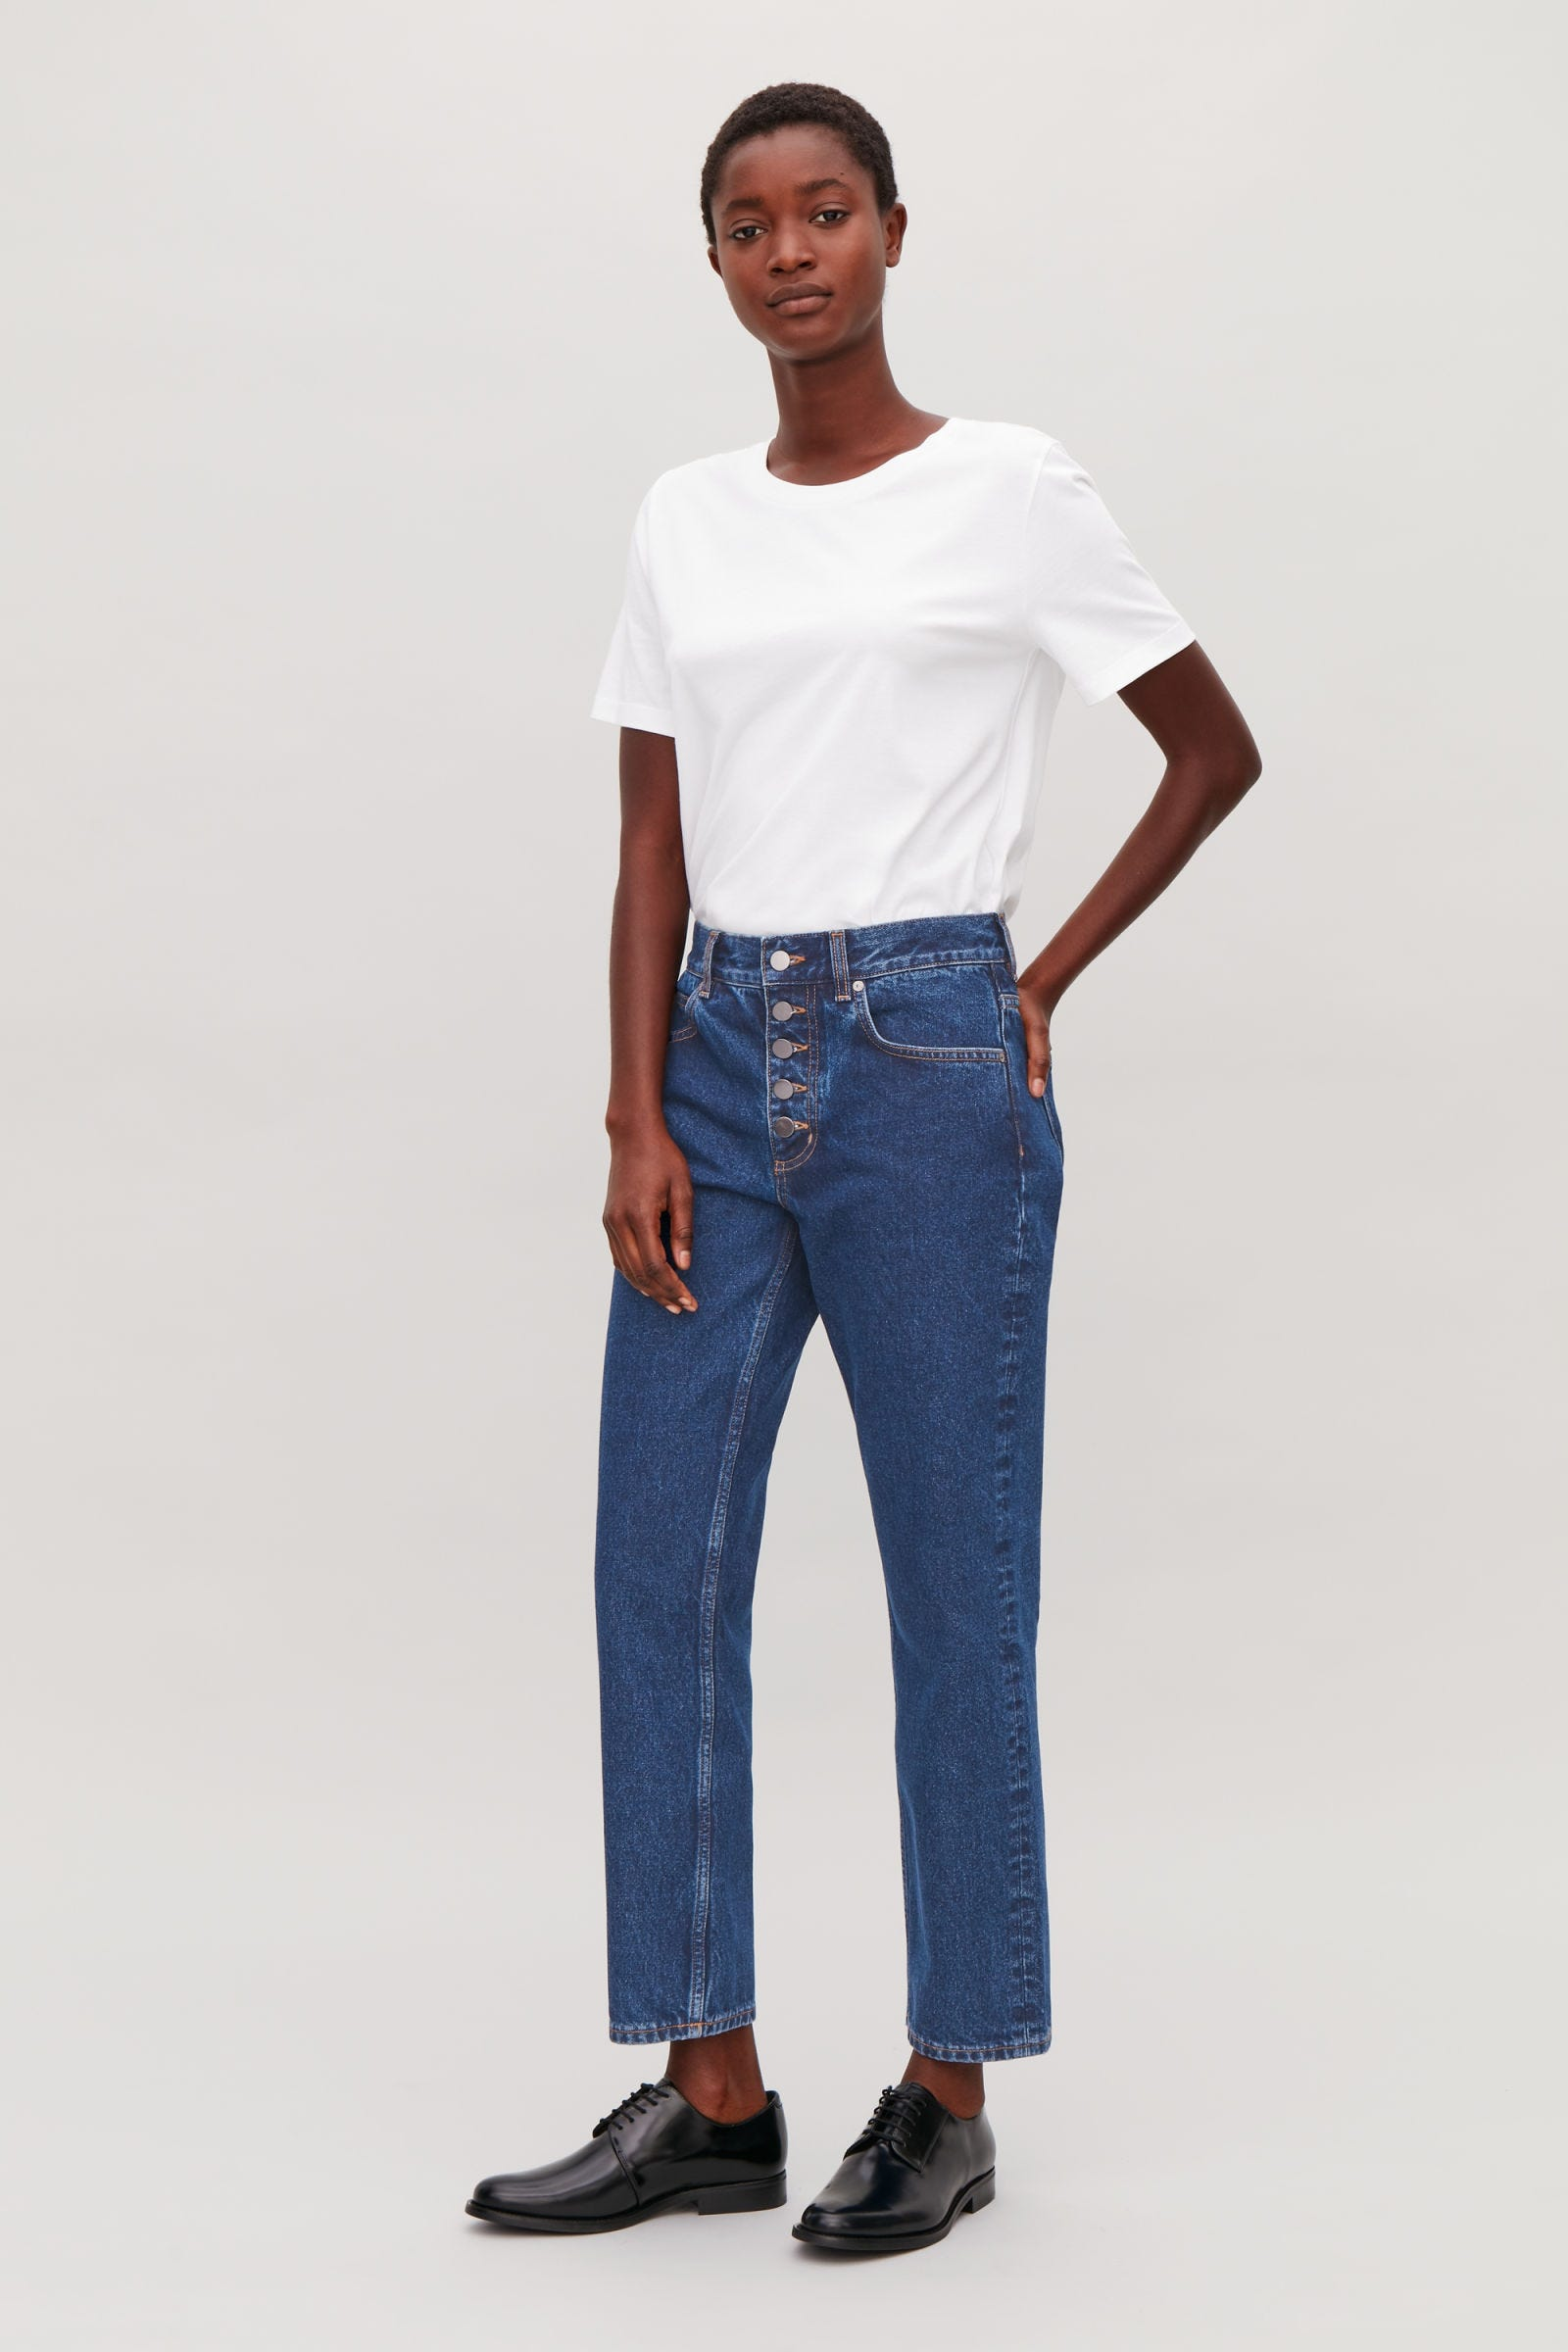 f4ad43cb33ea3 Denim   Jean Trends That Are Going To Be Huge In 2019